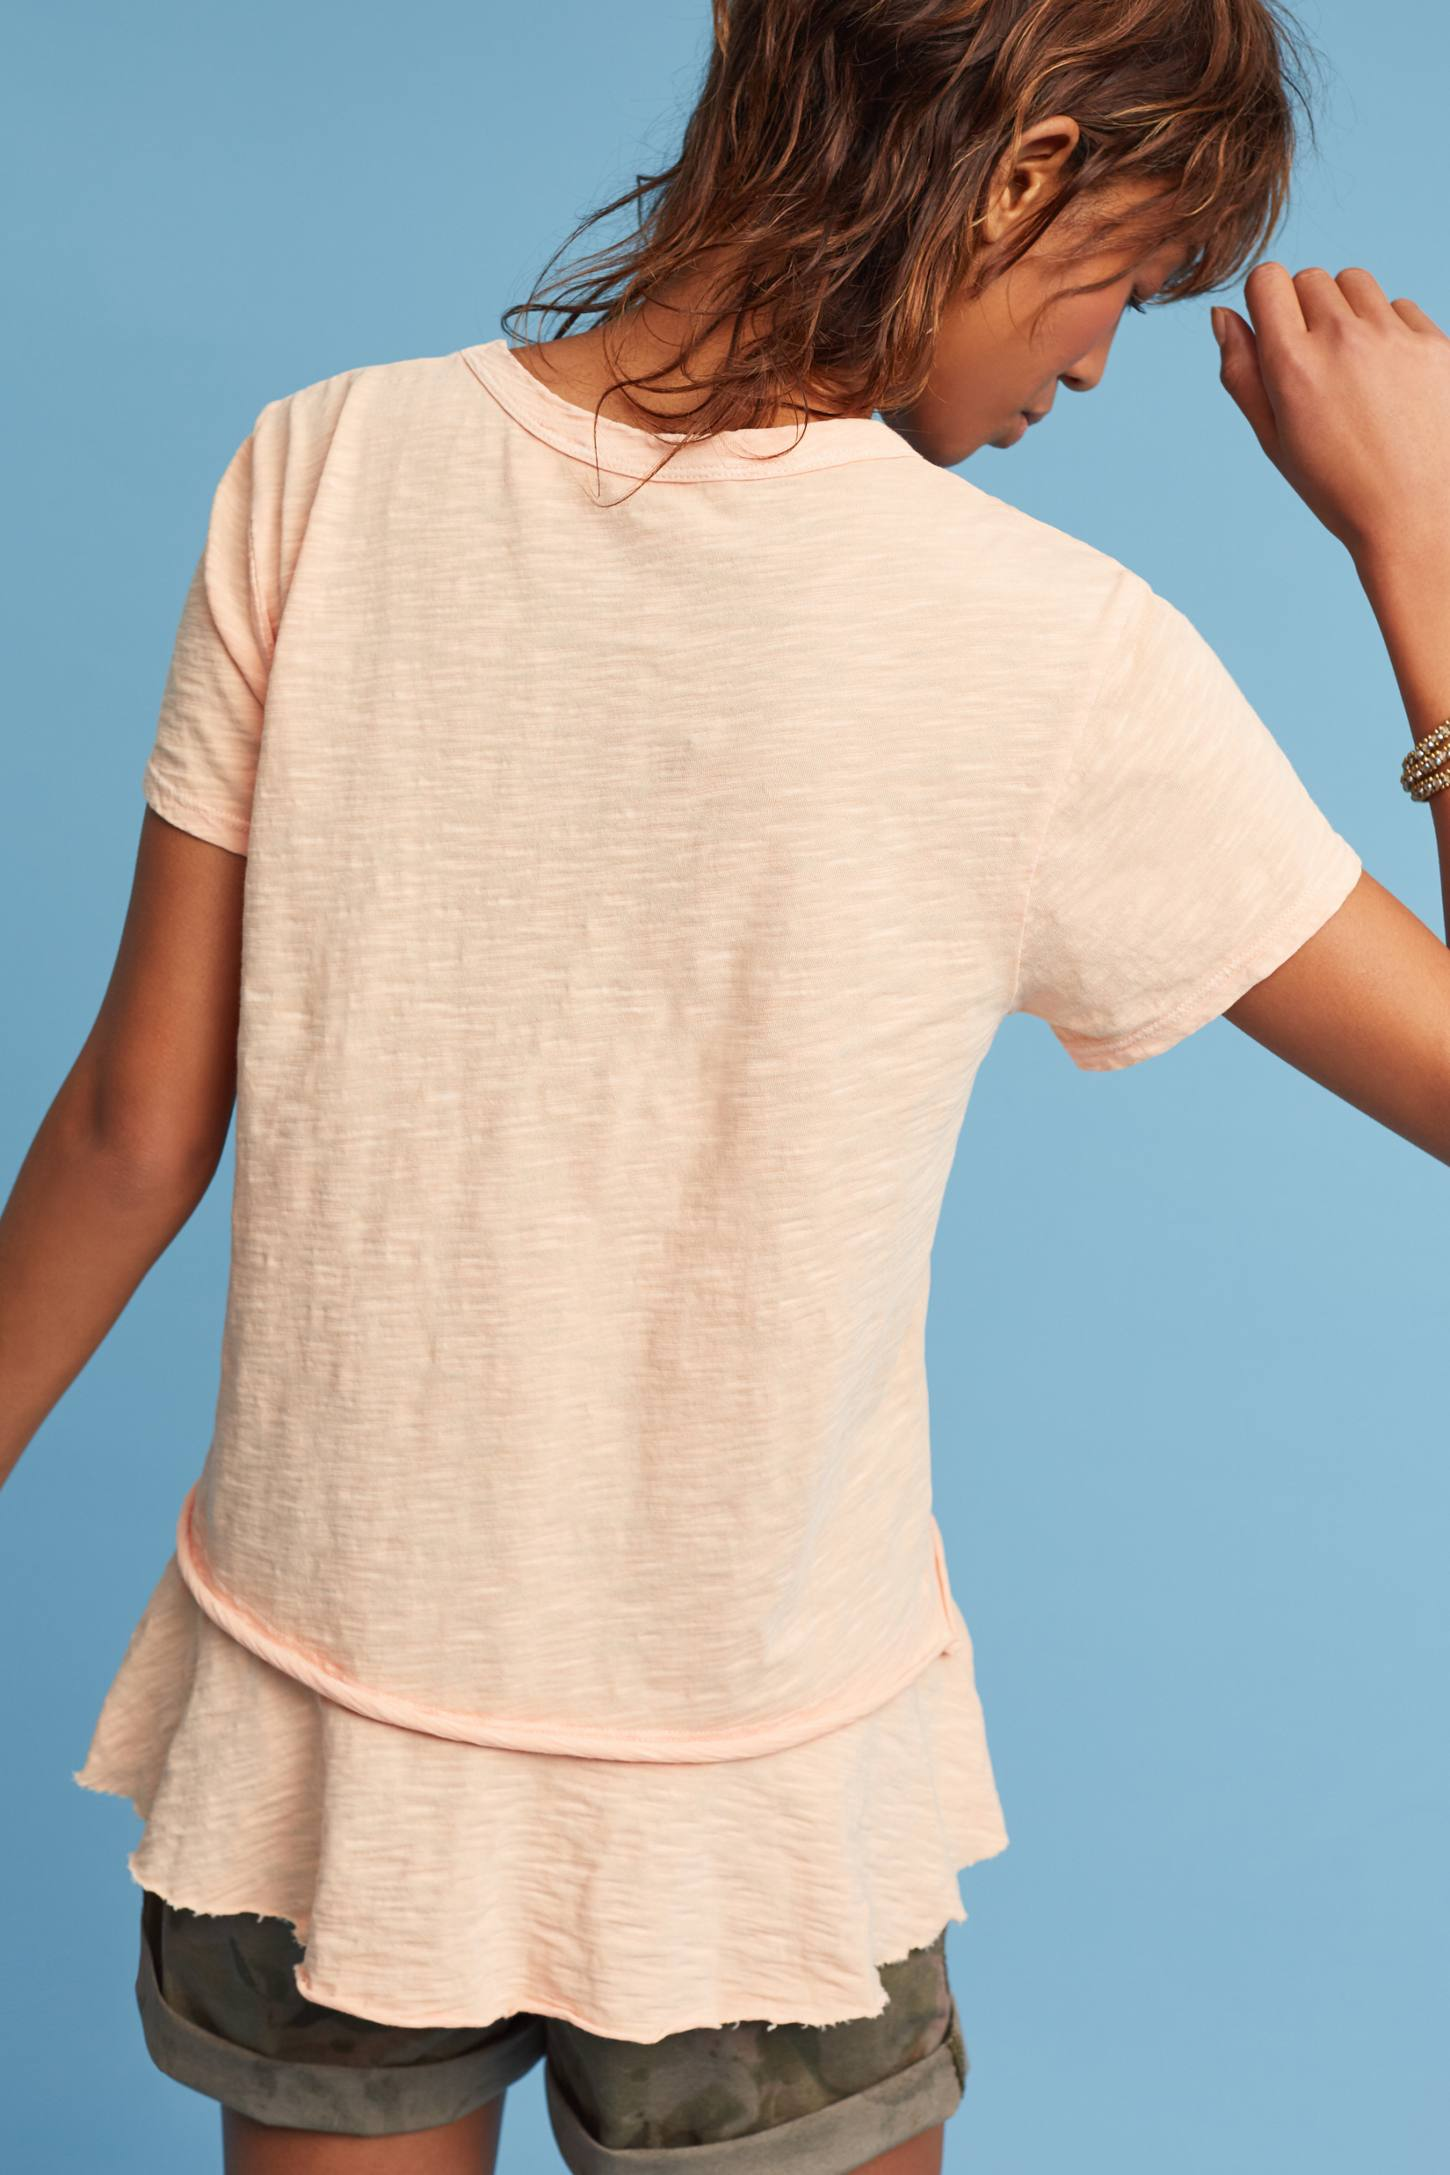 Slide View: 3: Layered Crew Neck Top